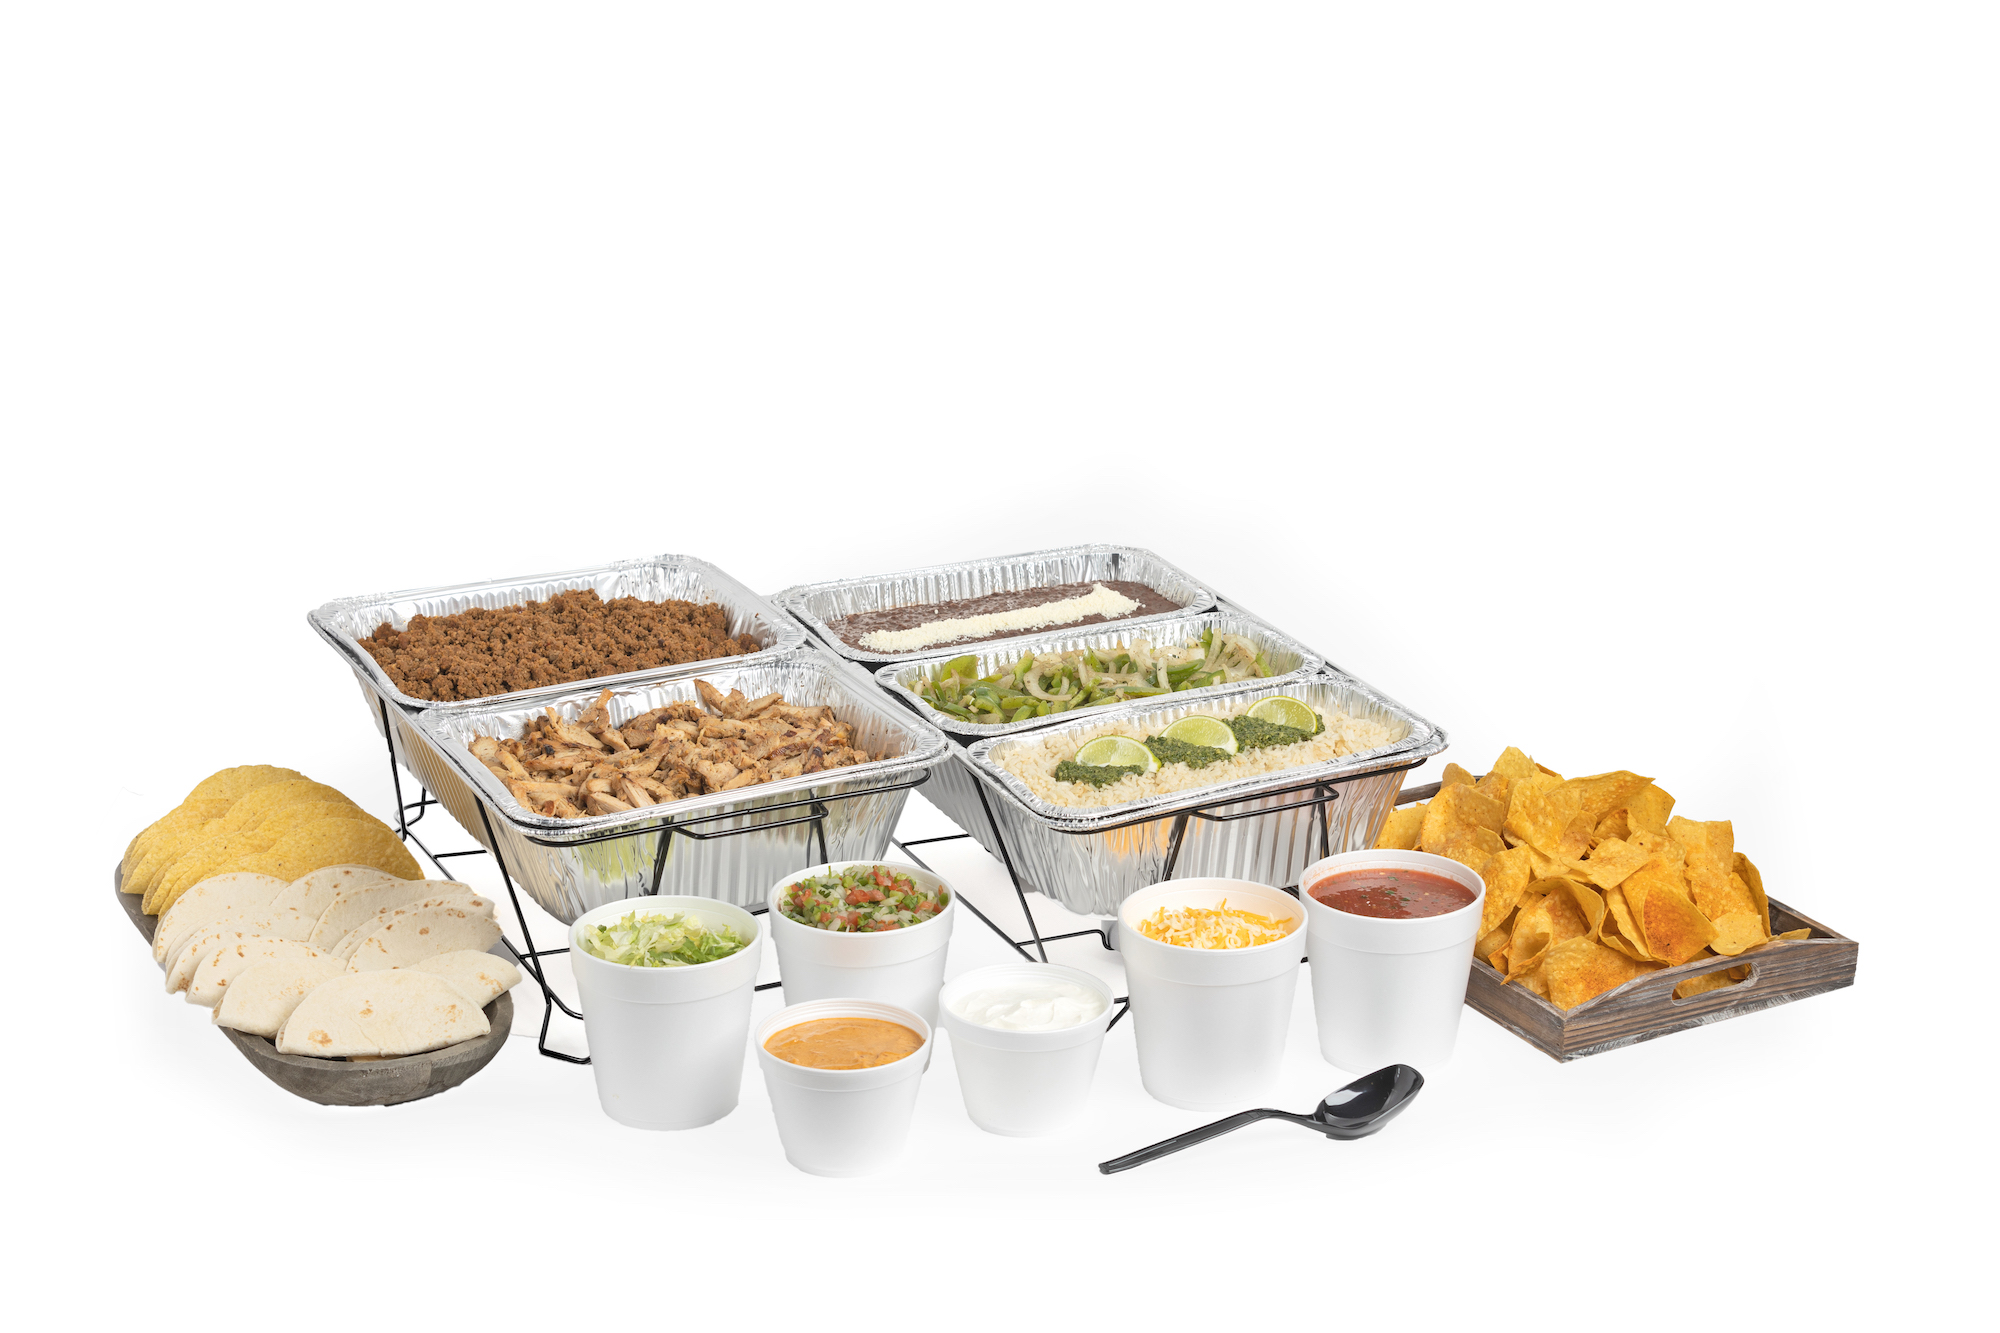 Catering - 2 Meat Taco Bar